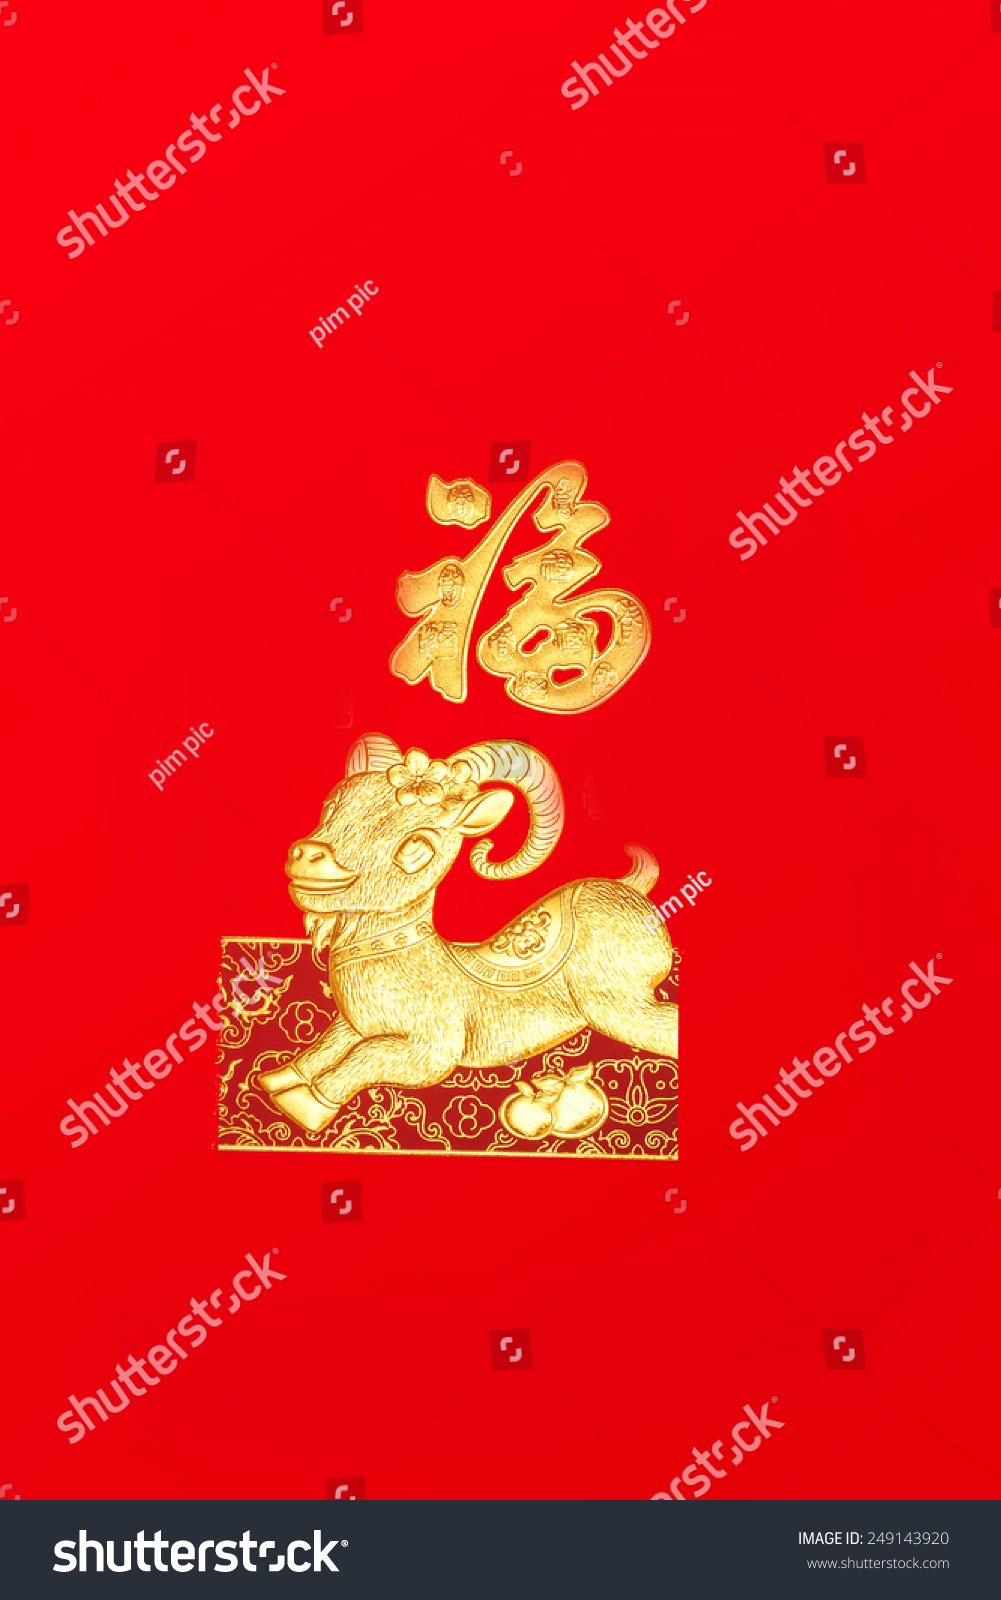 chinese new year decorationsgenerci chinese character symbolizes gong xi fa cai without copyright infringement